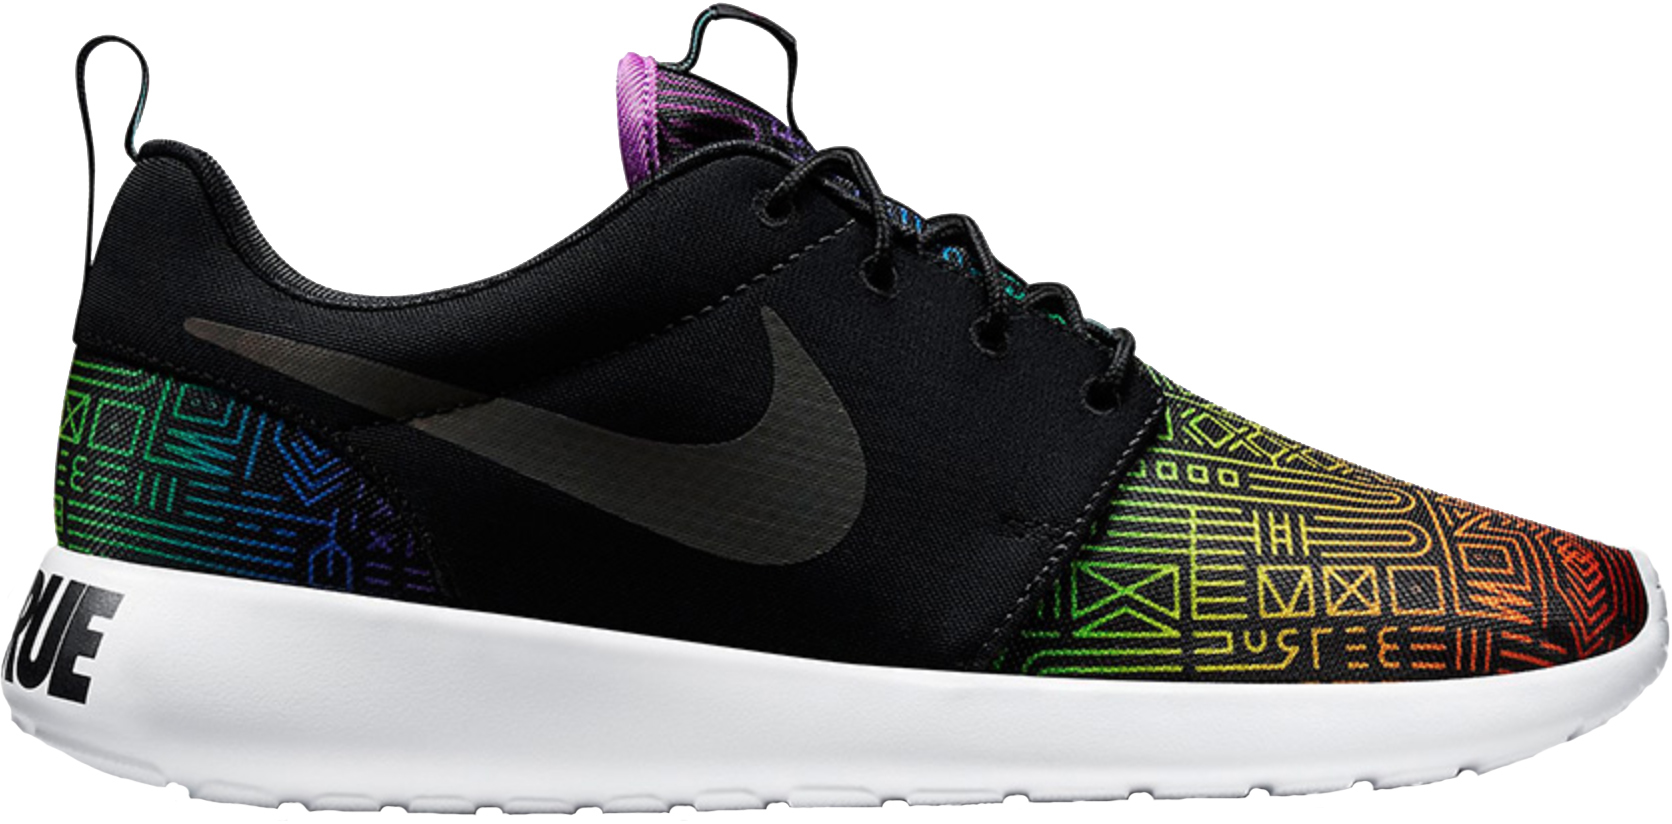 nike roshes for sale nzqa